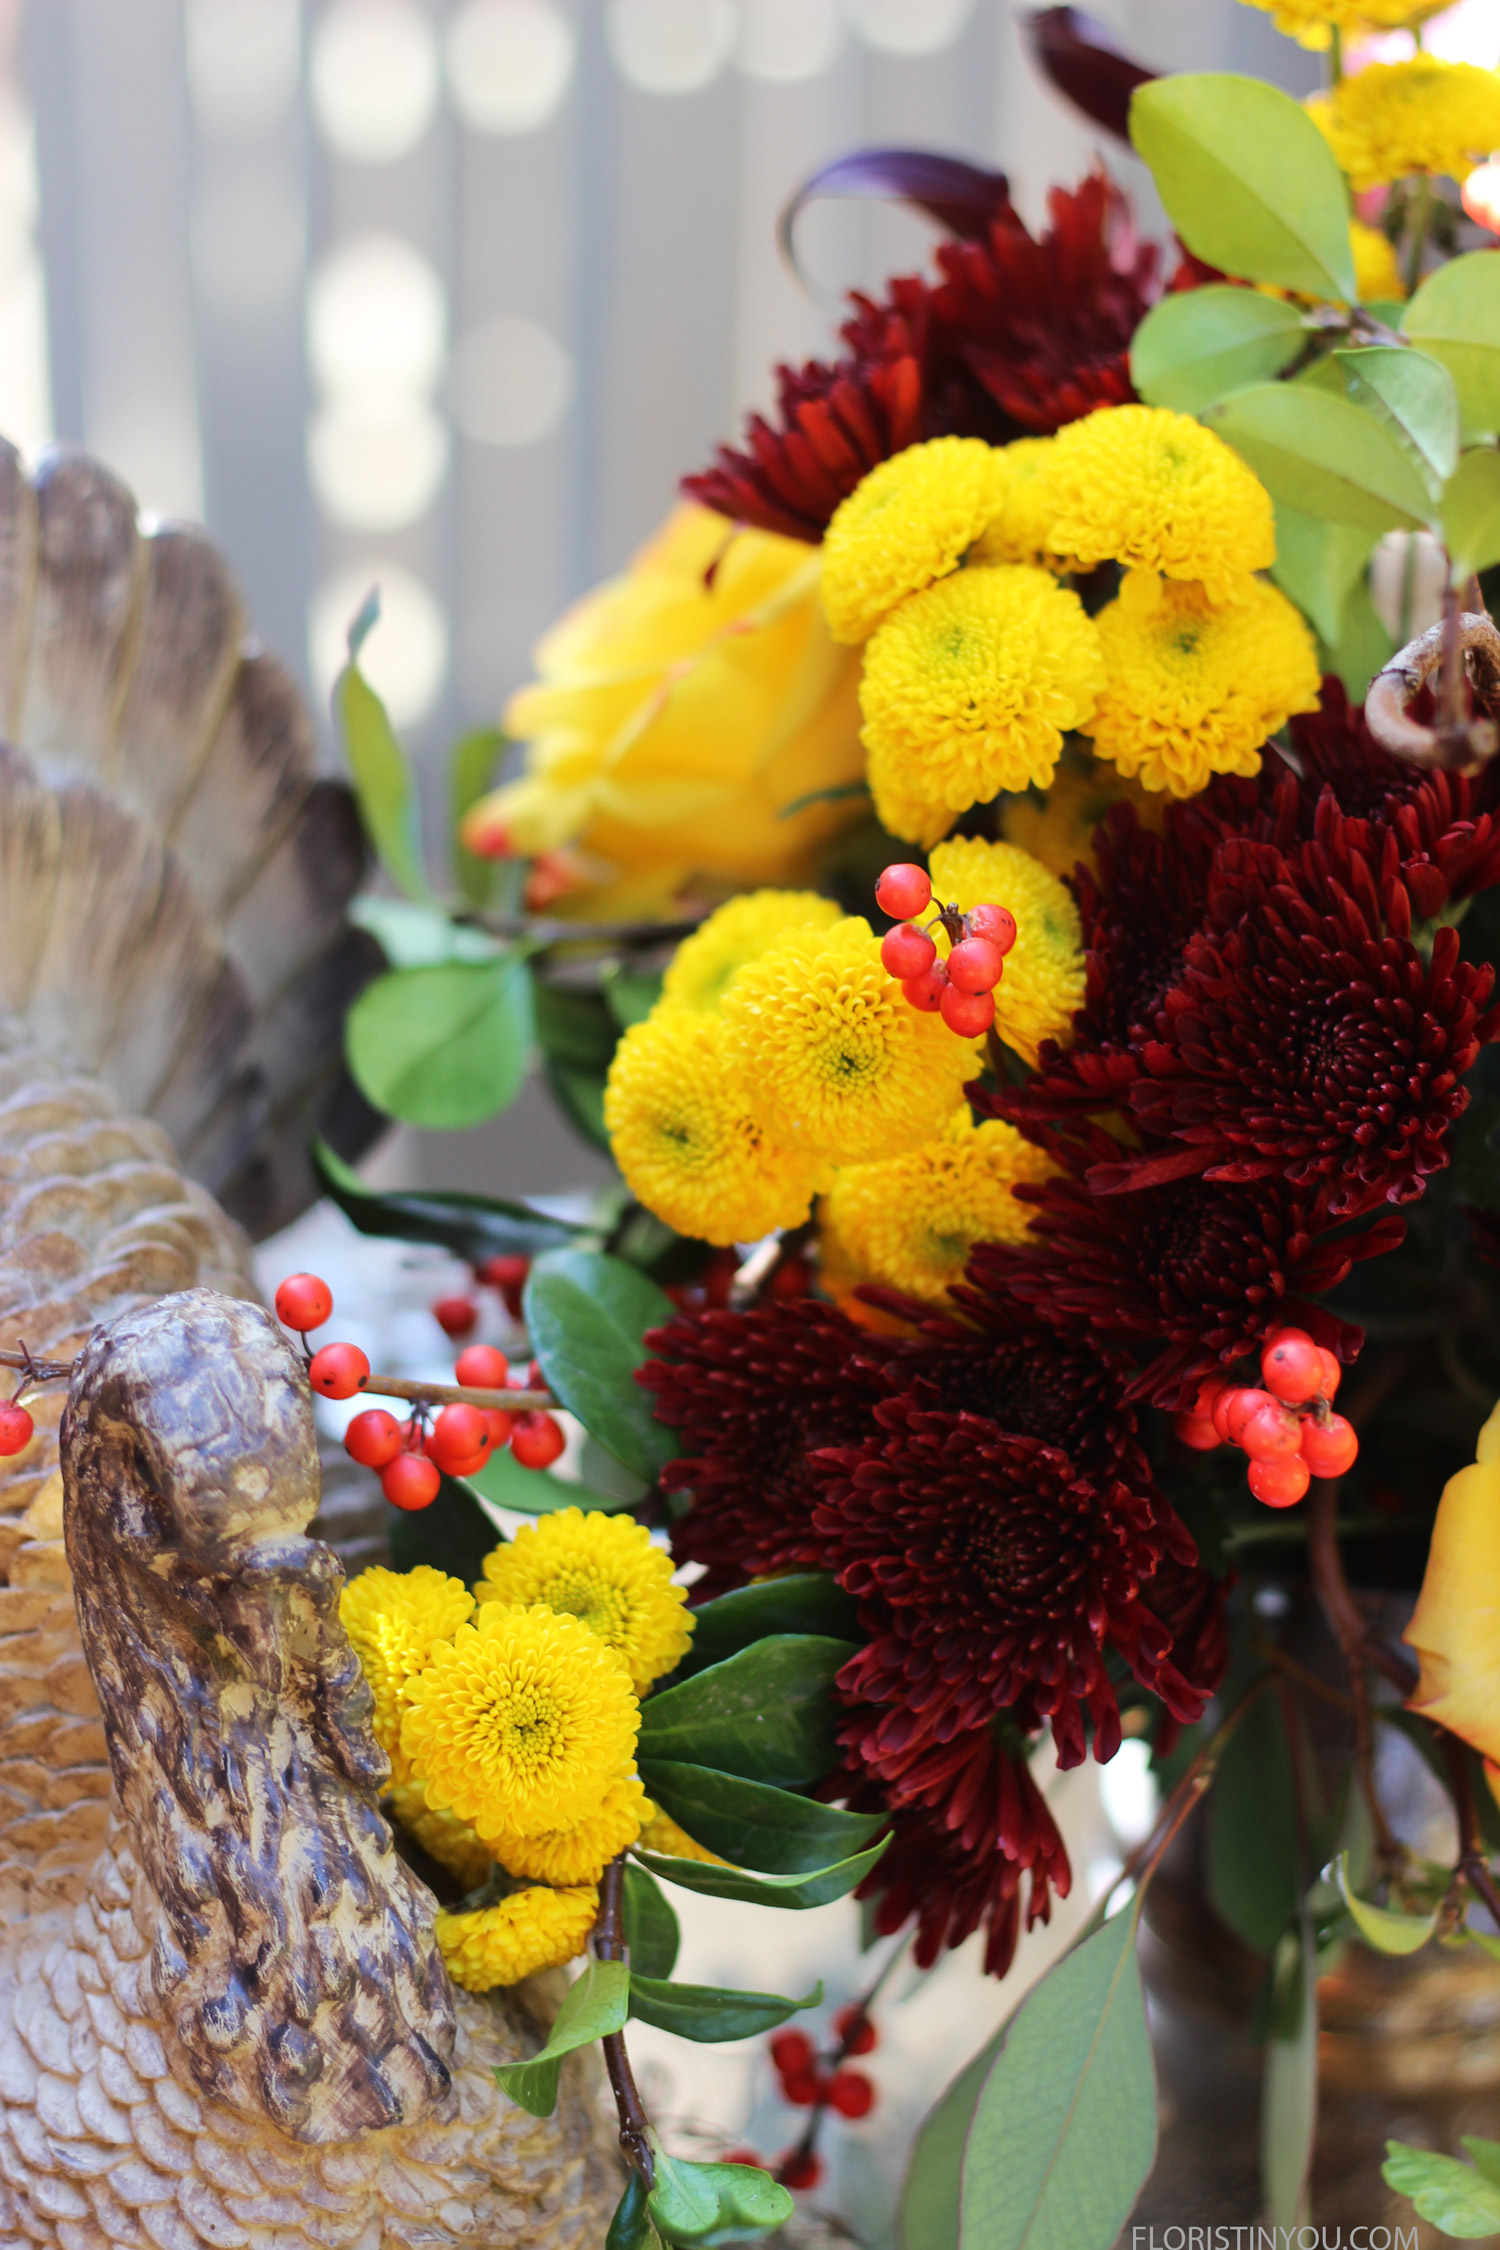 A wooden Turkey nestles in the mums.